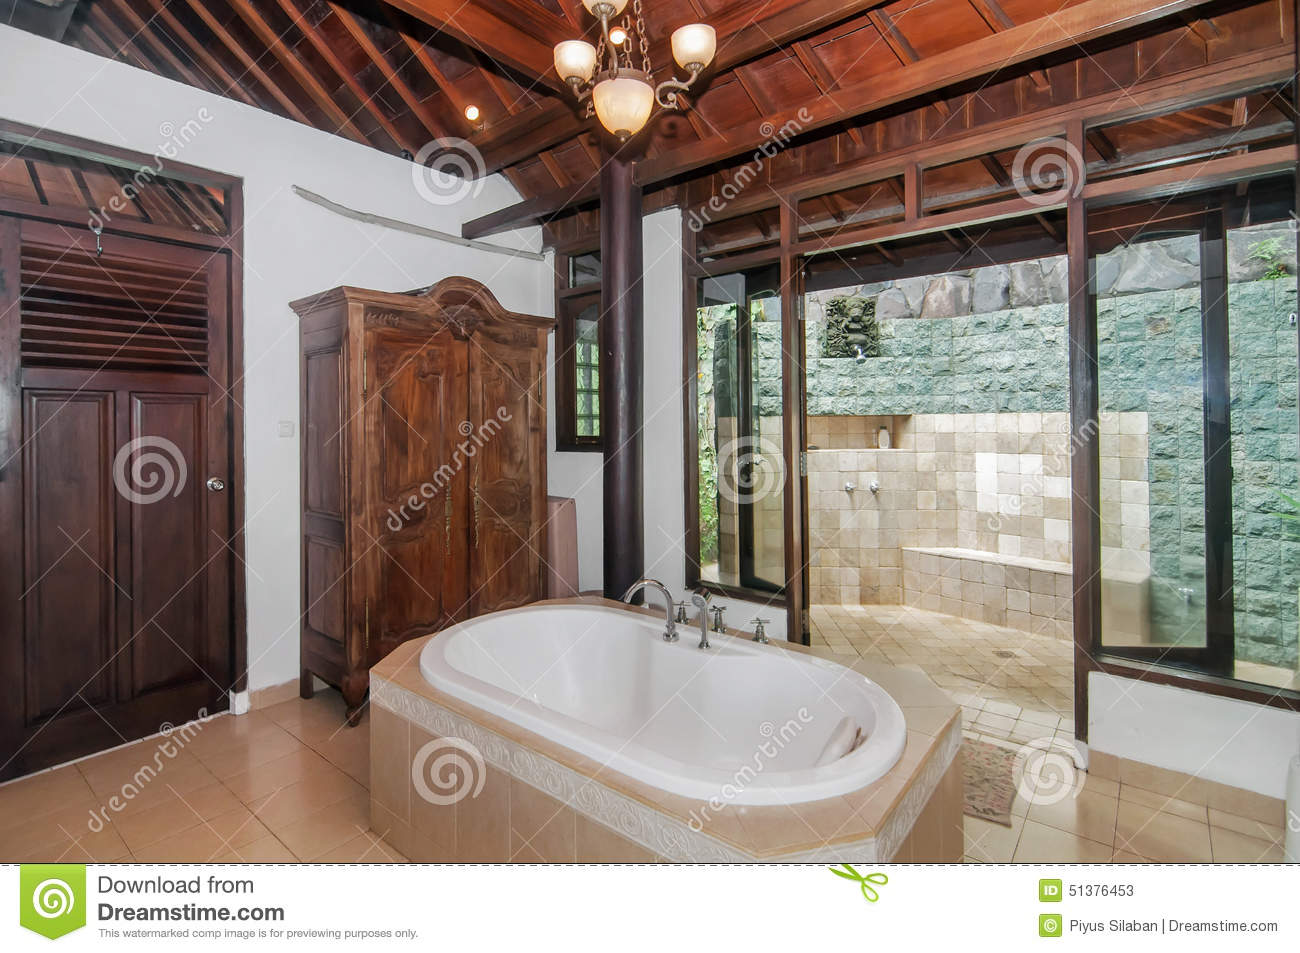 Indoor Clean Bathup stock image. Image of soap, shower - 51376453